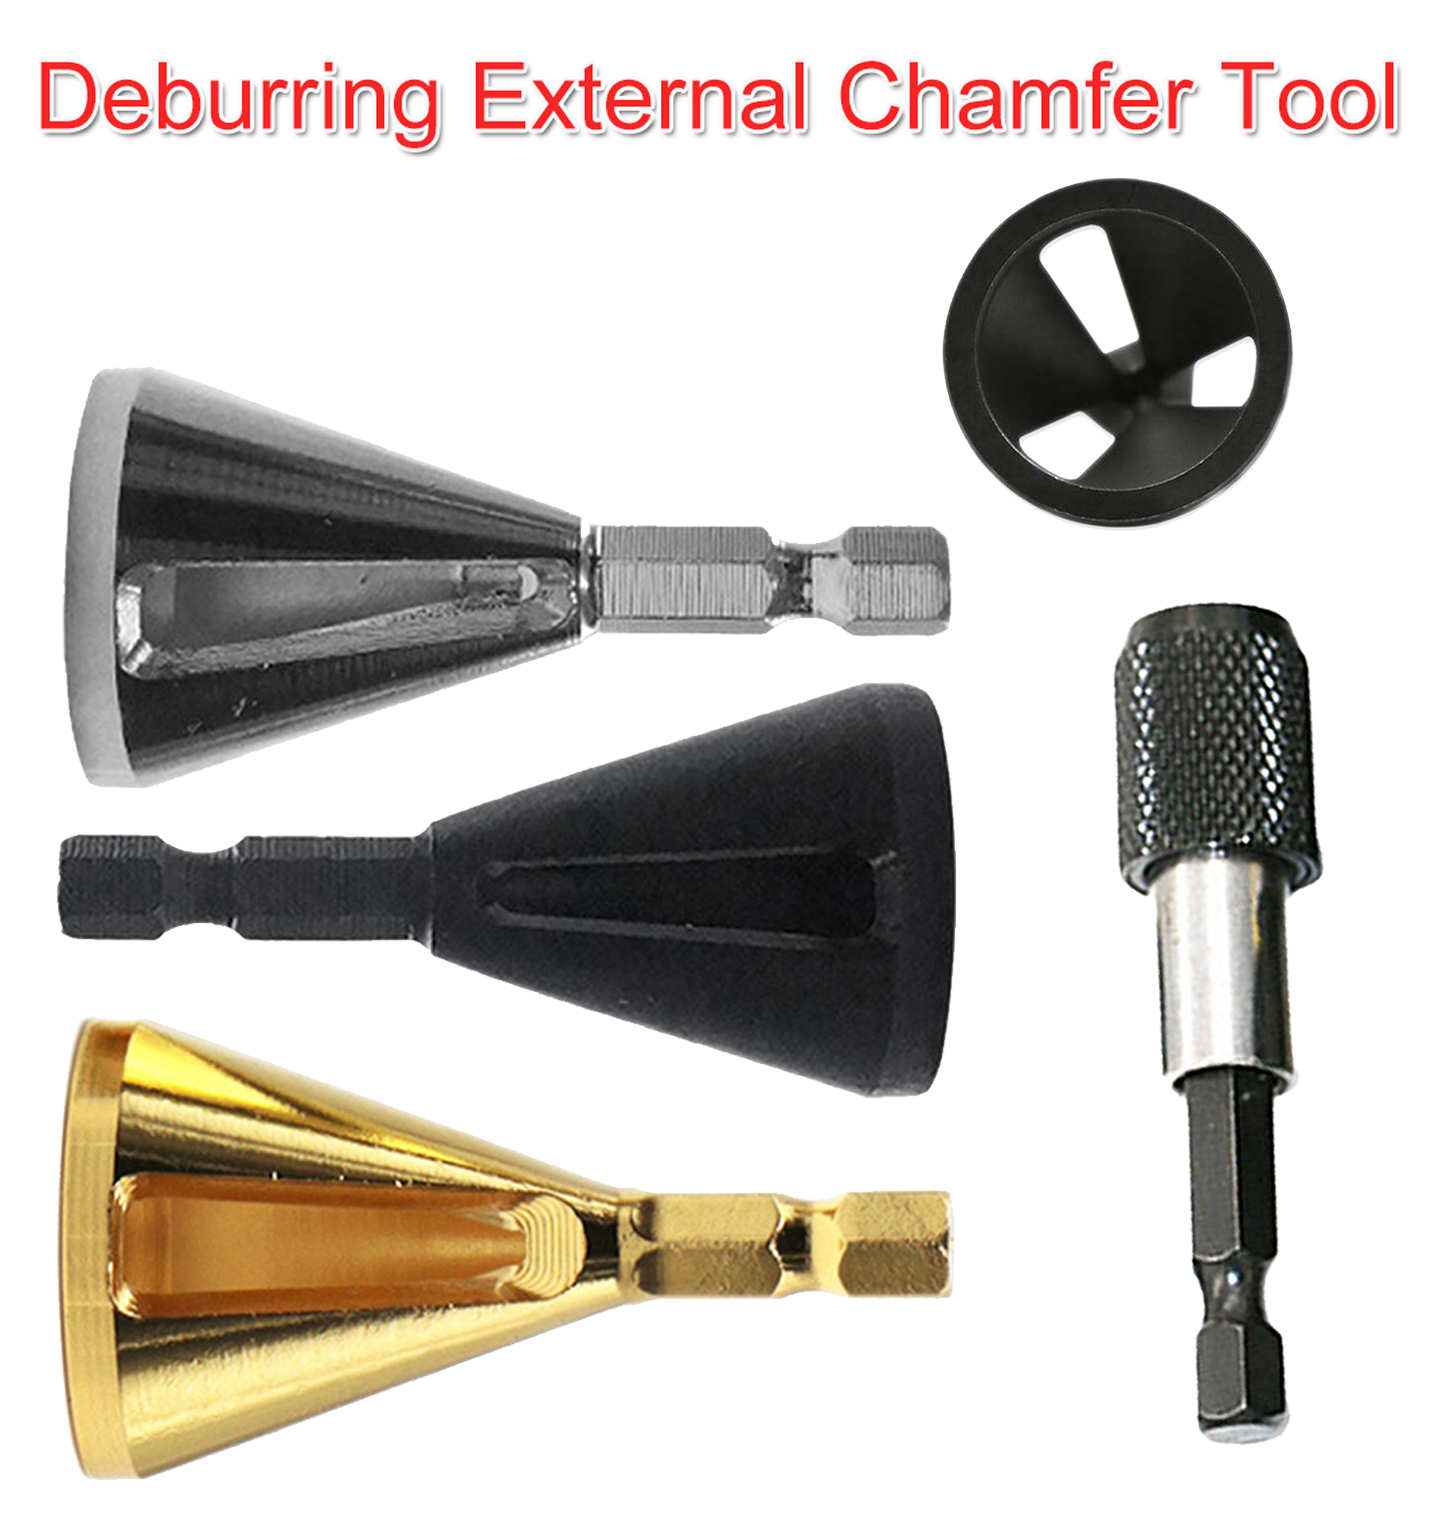 High Strength Hardness Drill Bit 1/4 Hex Steel Deburring External Chamfer Tool Remove Burr For Stainless Steel/ Wood/ Plastic